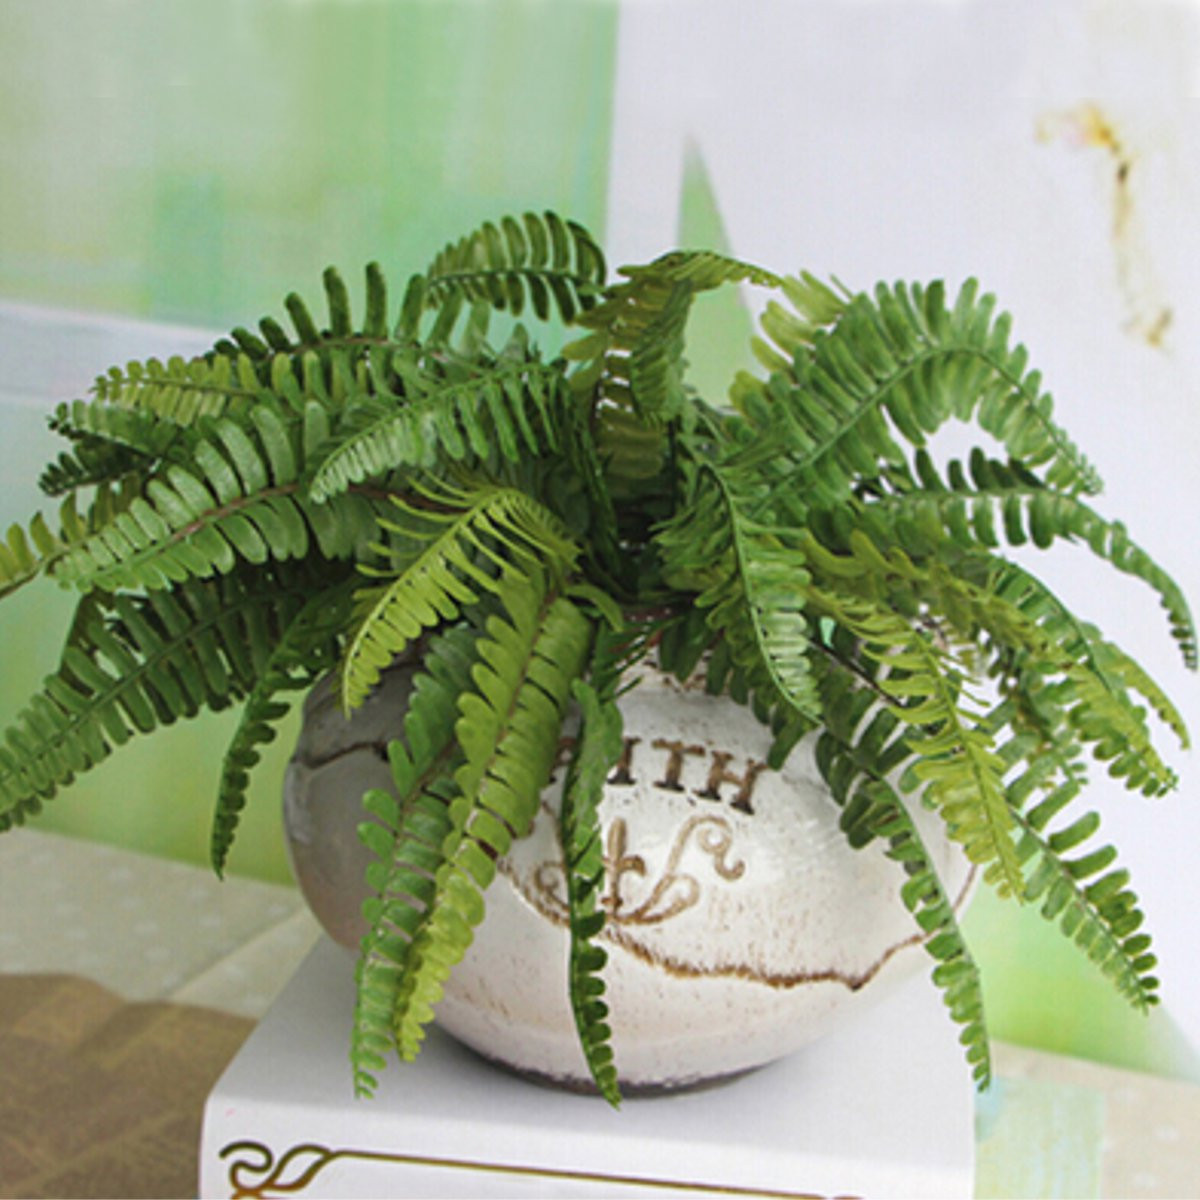 1 Bouquet Artificial Green Fern Bush Plant Leaves Flower Arrangment Home Floral Craft Decor